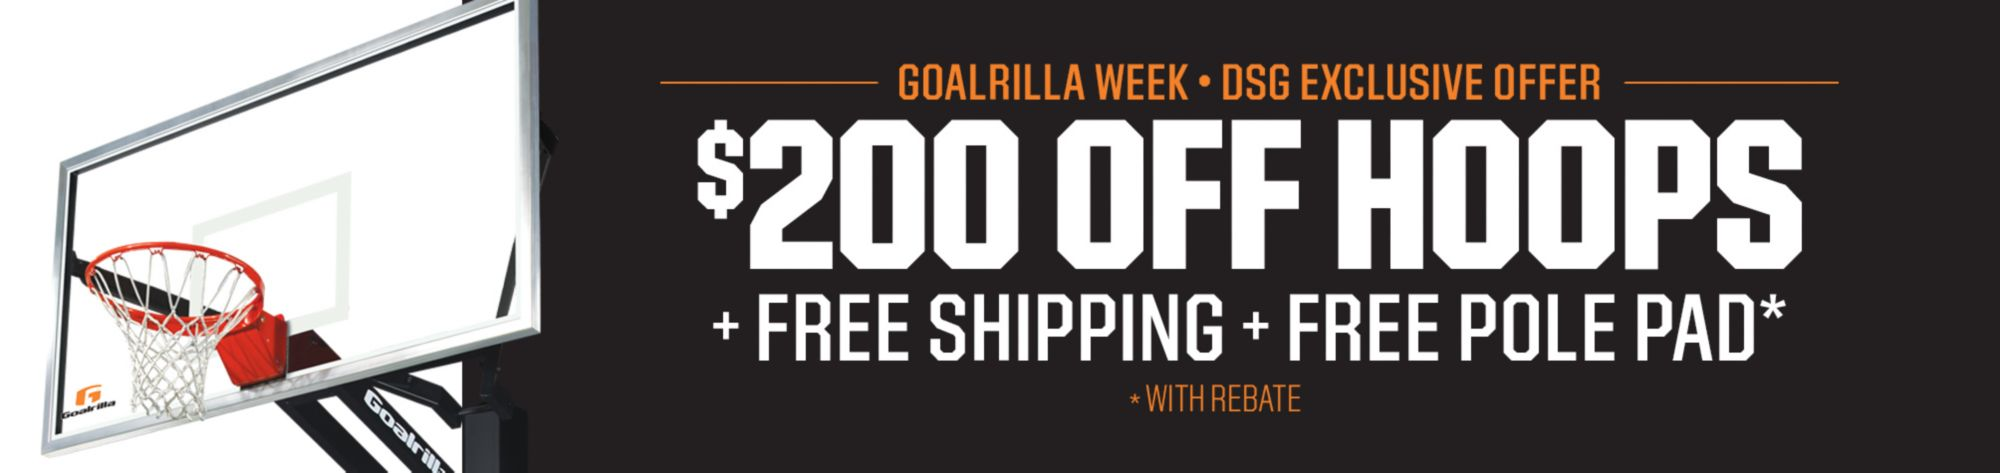 GOALRILLA WEEK Dick's Sporting Goods Special Offer $200 Off Hoops + Free Shipping + Free Pole Pad